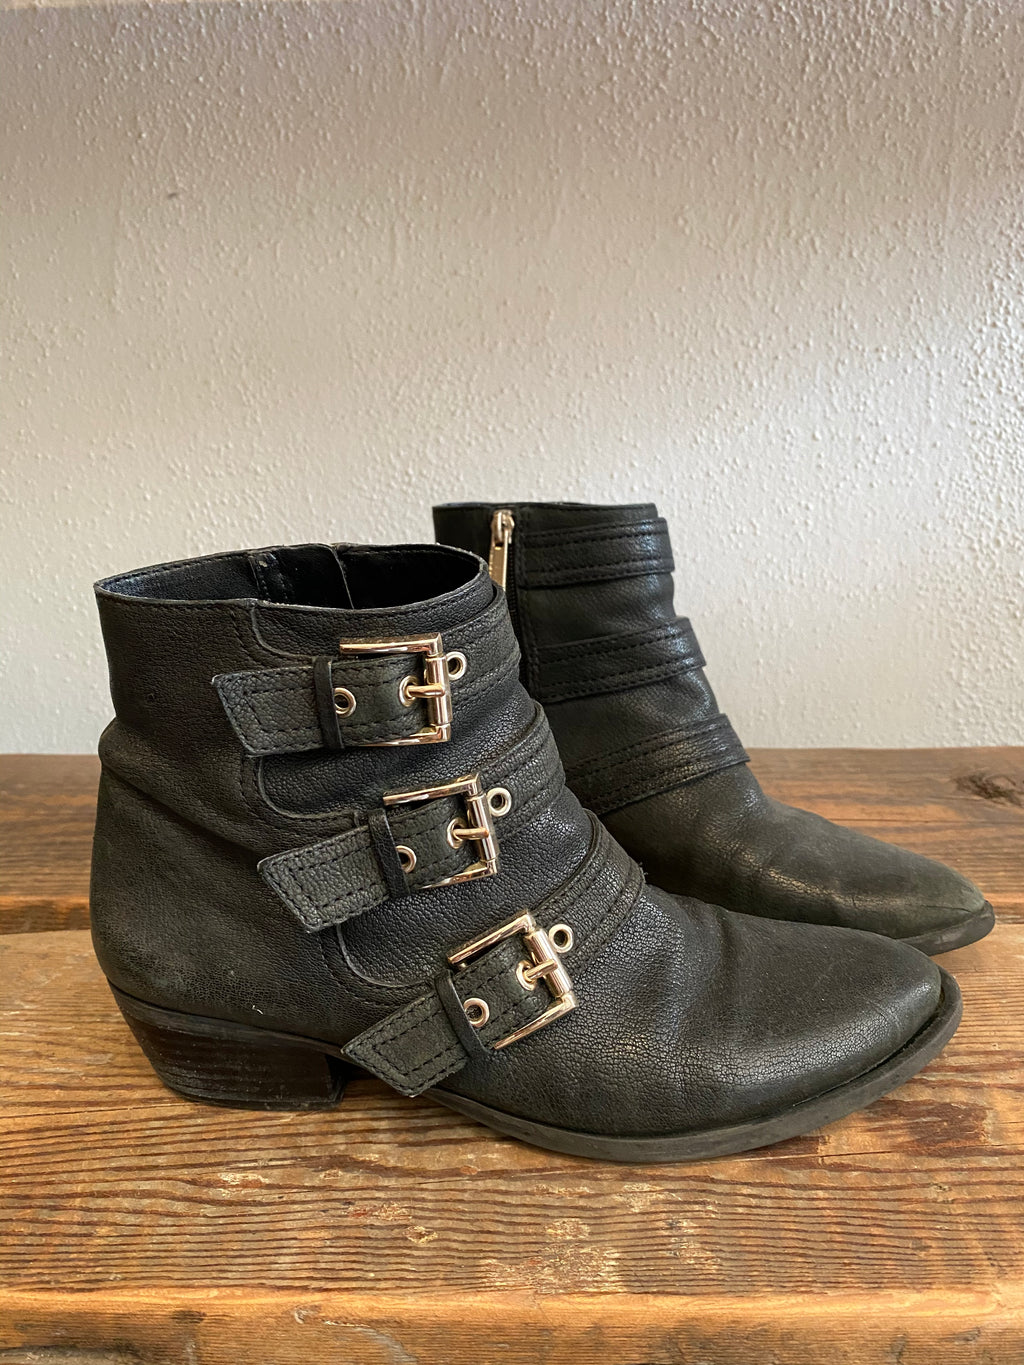 Vince Camuto Tenley Boots Size 7